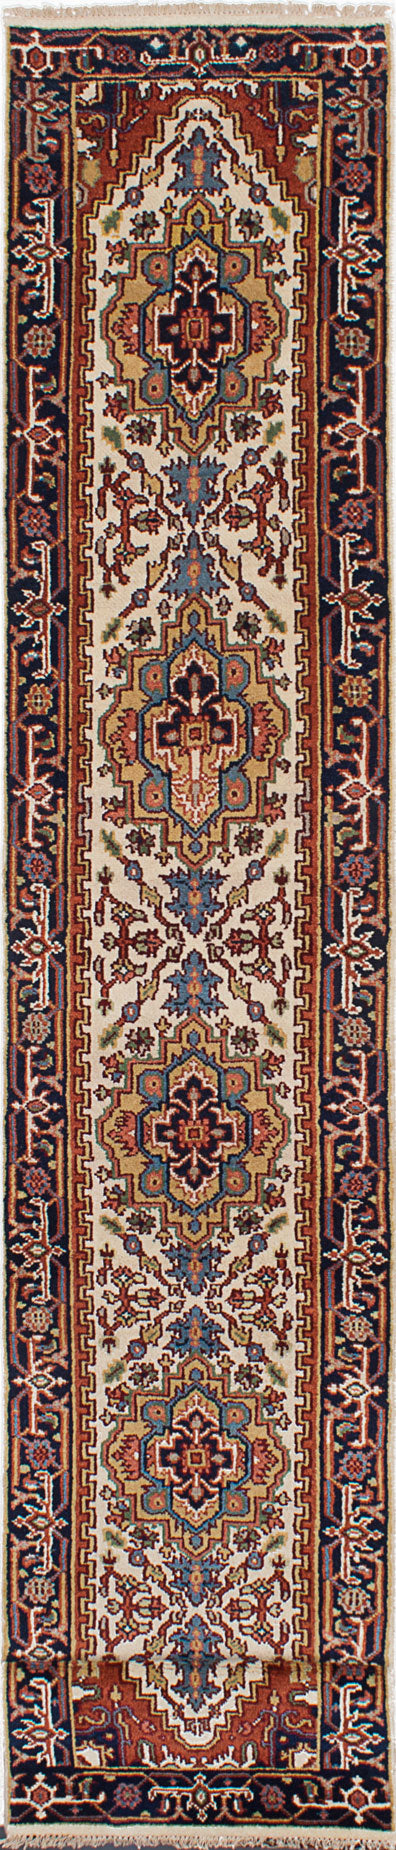 "Hand-knotted Indian Floral  Traditional Serapi-Heritage Runner rug  Copper, Cream 2'5 x 9'5"" """